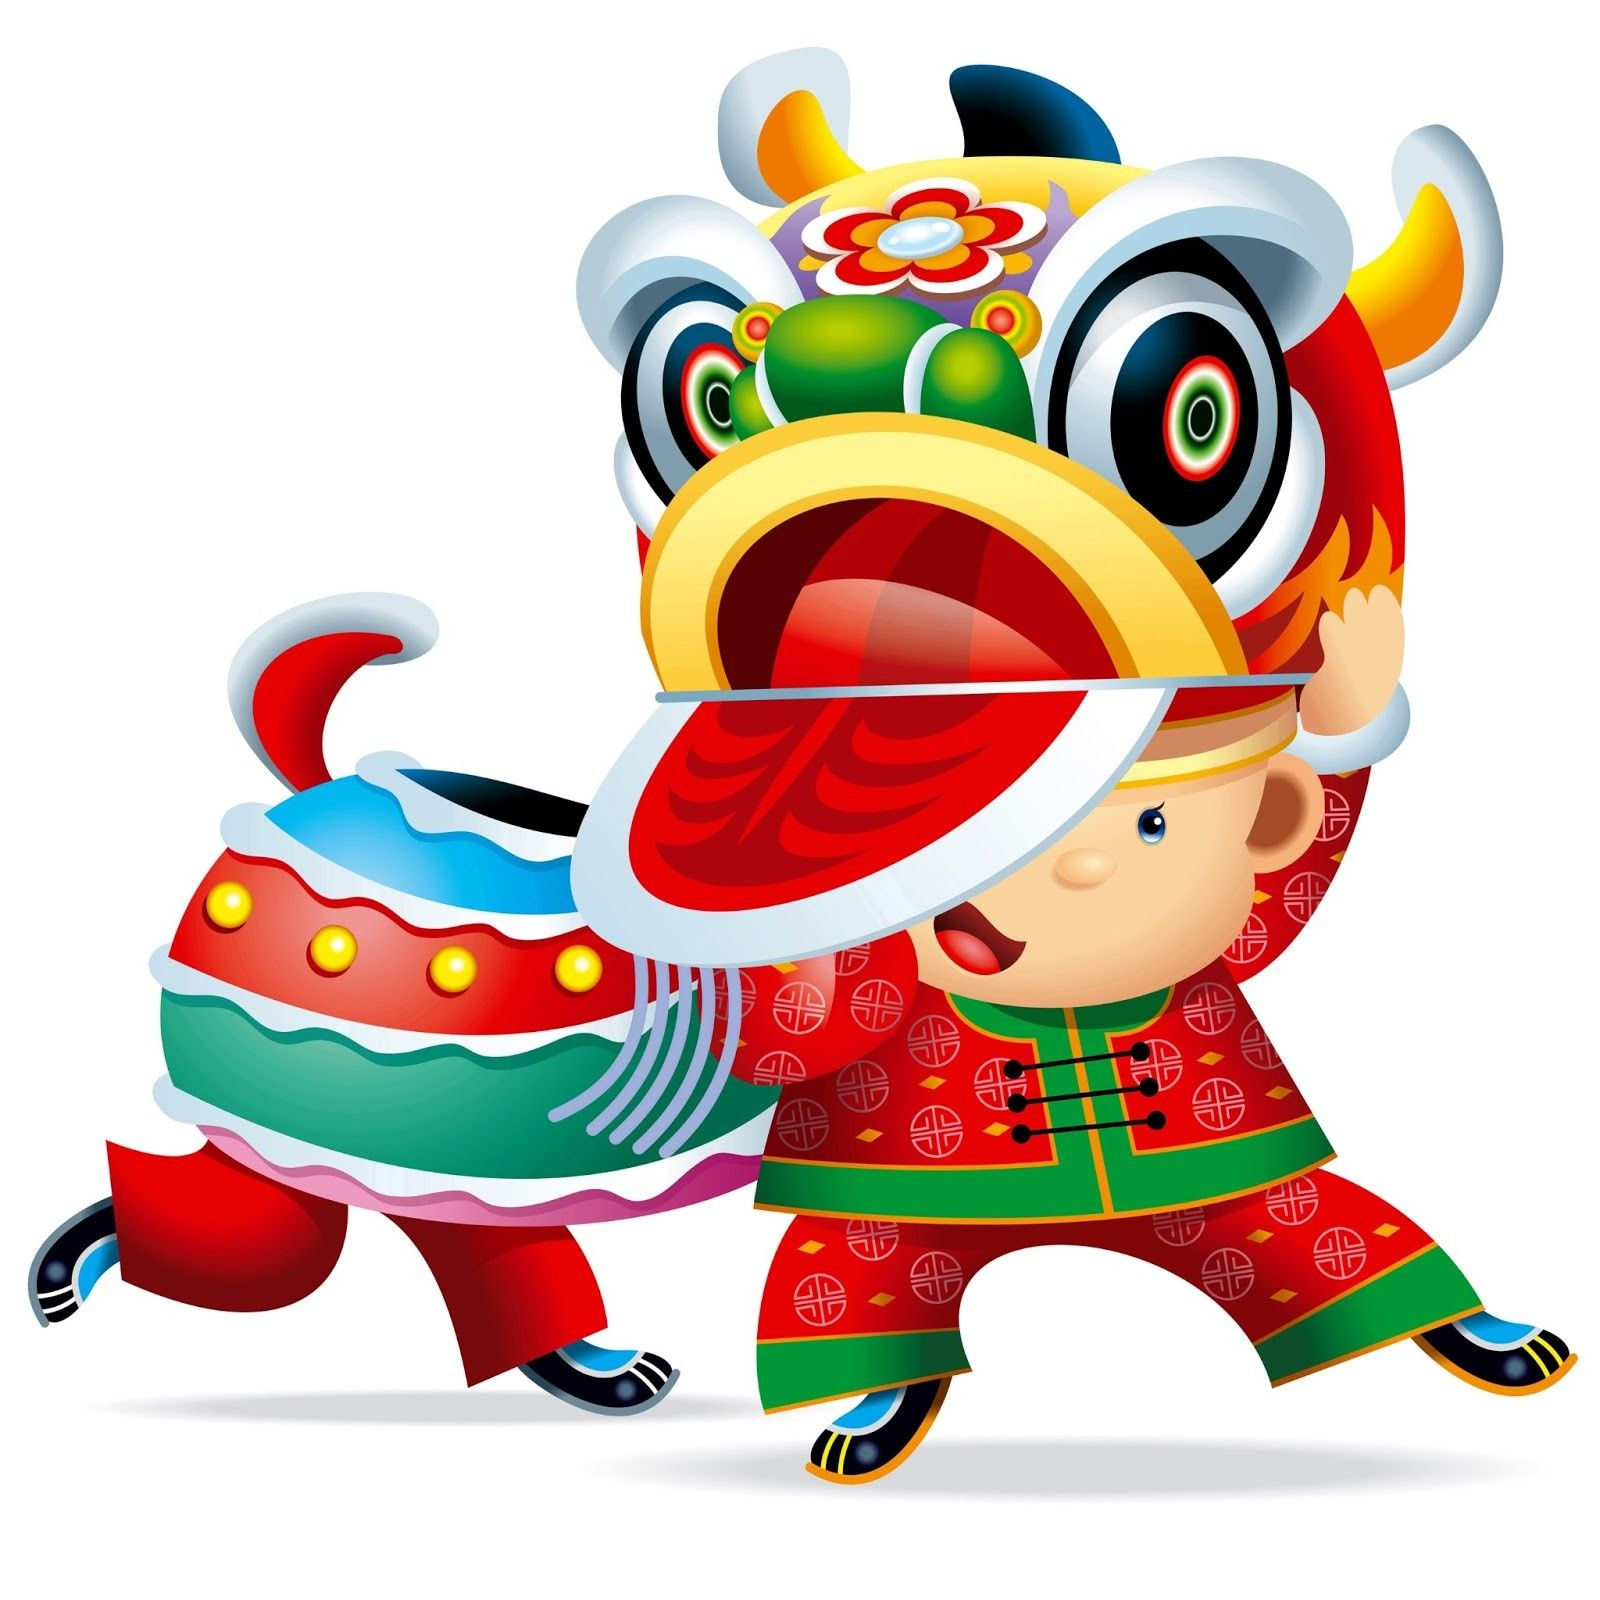 Uncategorized Chinese New Year Lion lunar new year or chinese will be celebrated this on january 31st